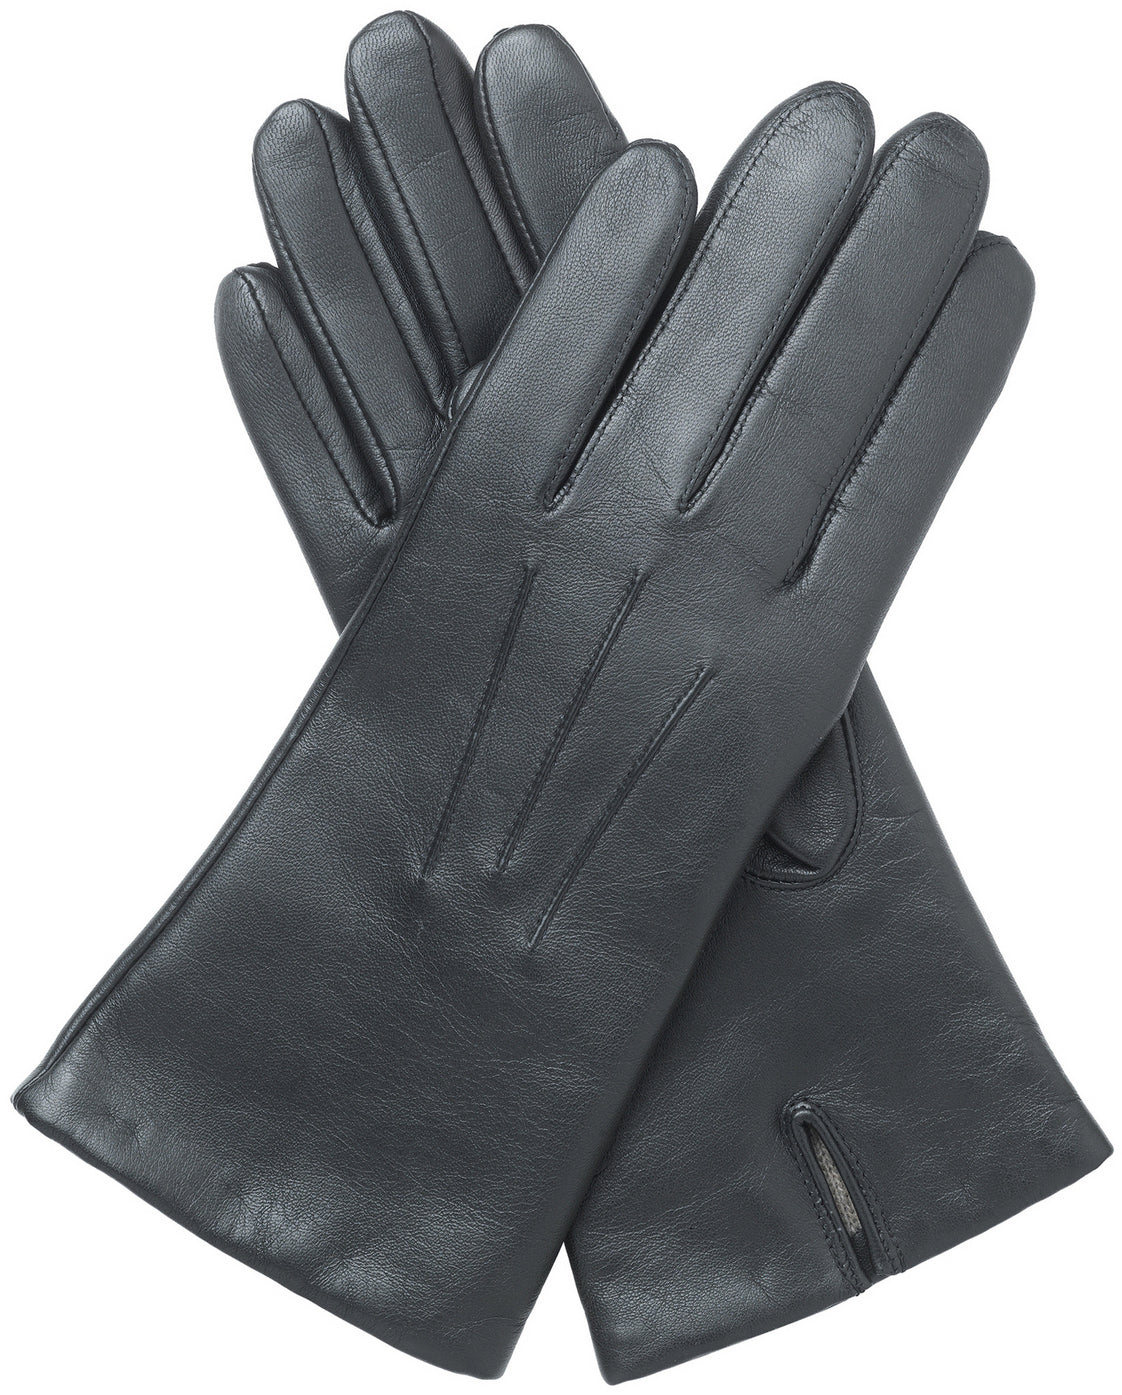 Southcombe Tilly Black Gloves